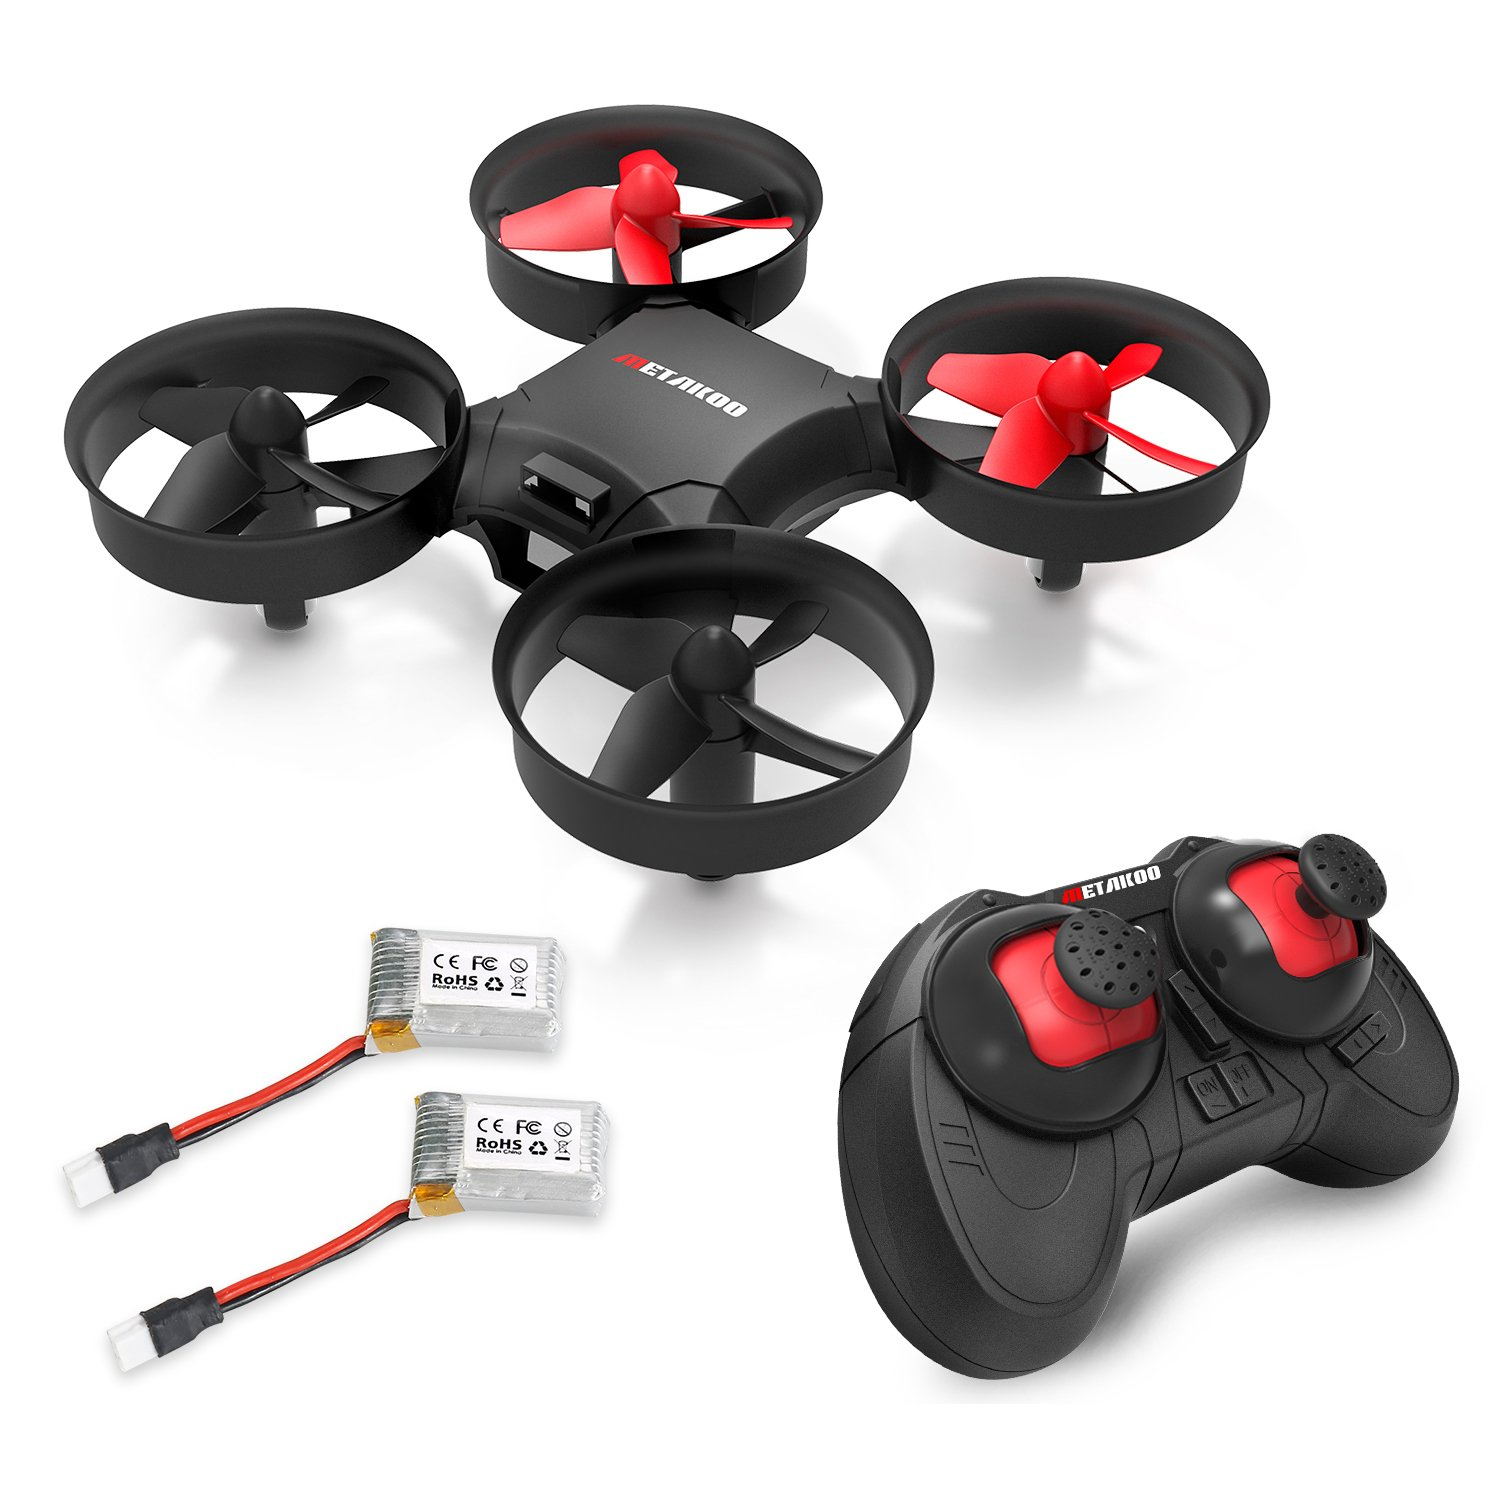 Drone, Metakoo M1 Mini Drone 2.4GHz 6-Axis Double Battery for Beginners and Kids Drone with 360°Full Protection, Altitude Hold, 3D Flips, Headless Mode, 3 Speed Modes Functions by METAKOO (Image #1)